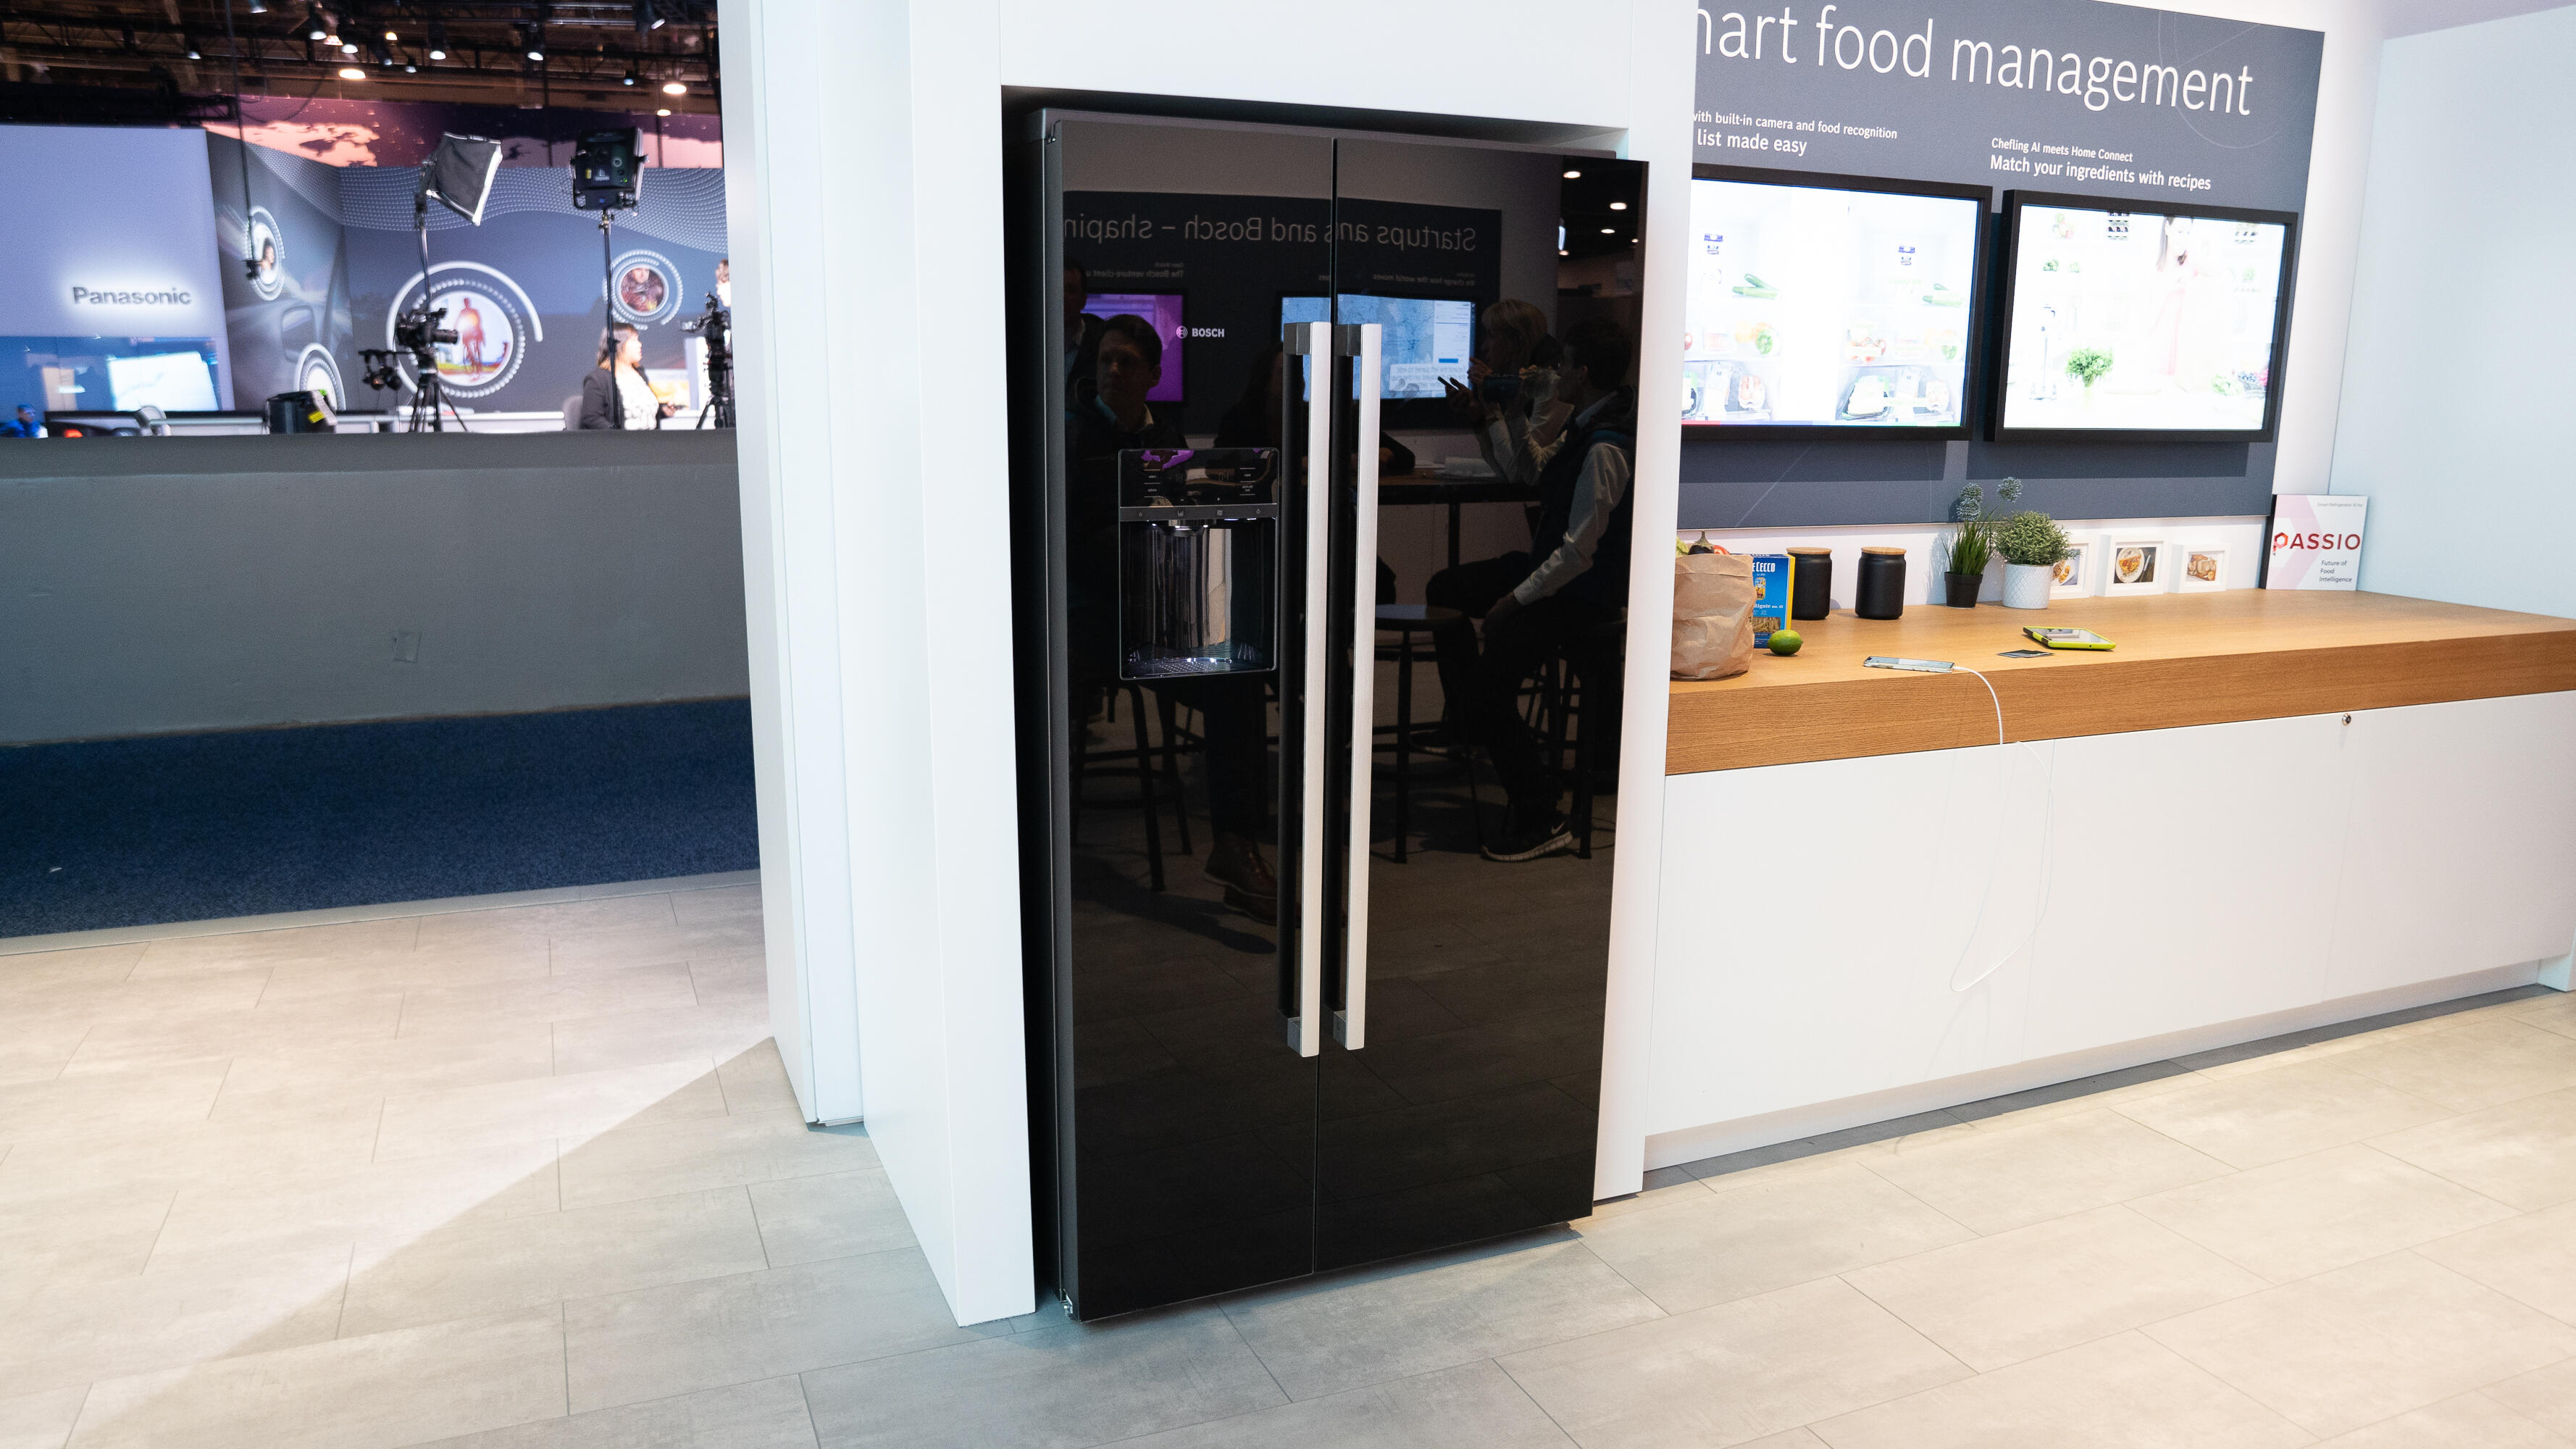 Bosch's connected refrigerators